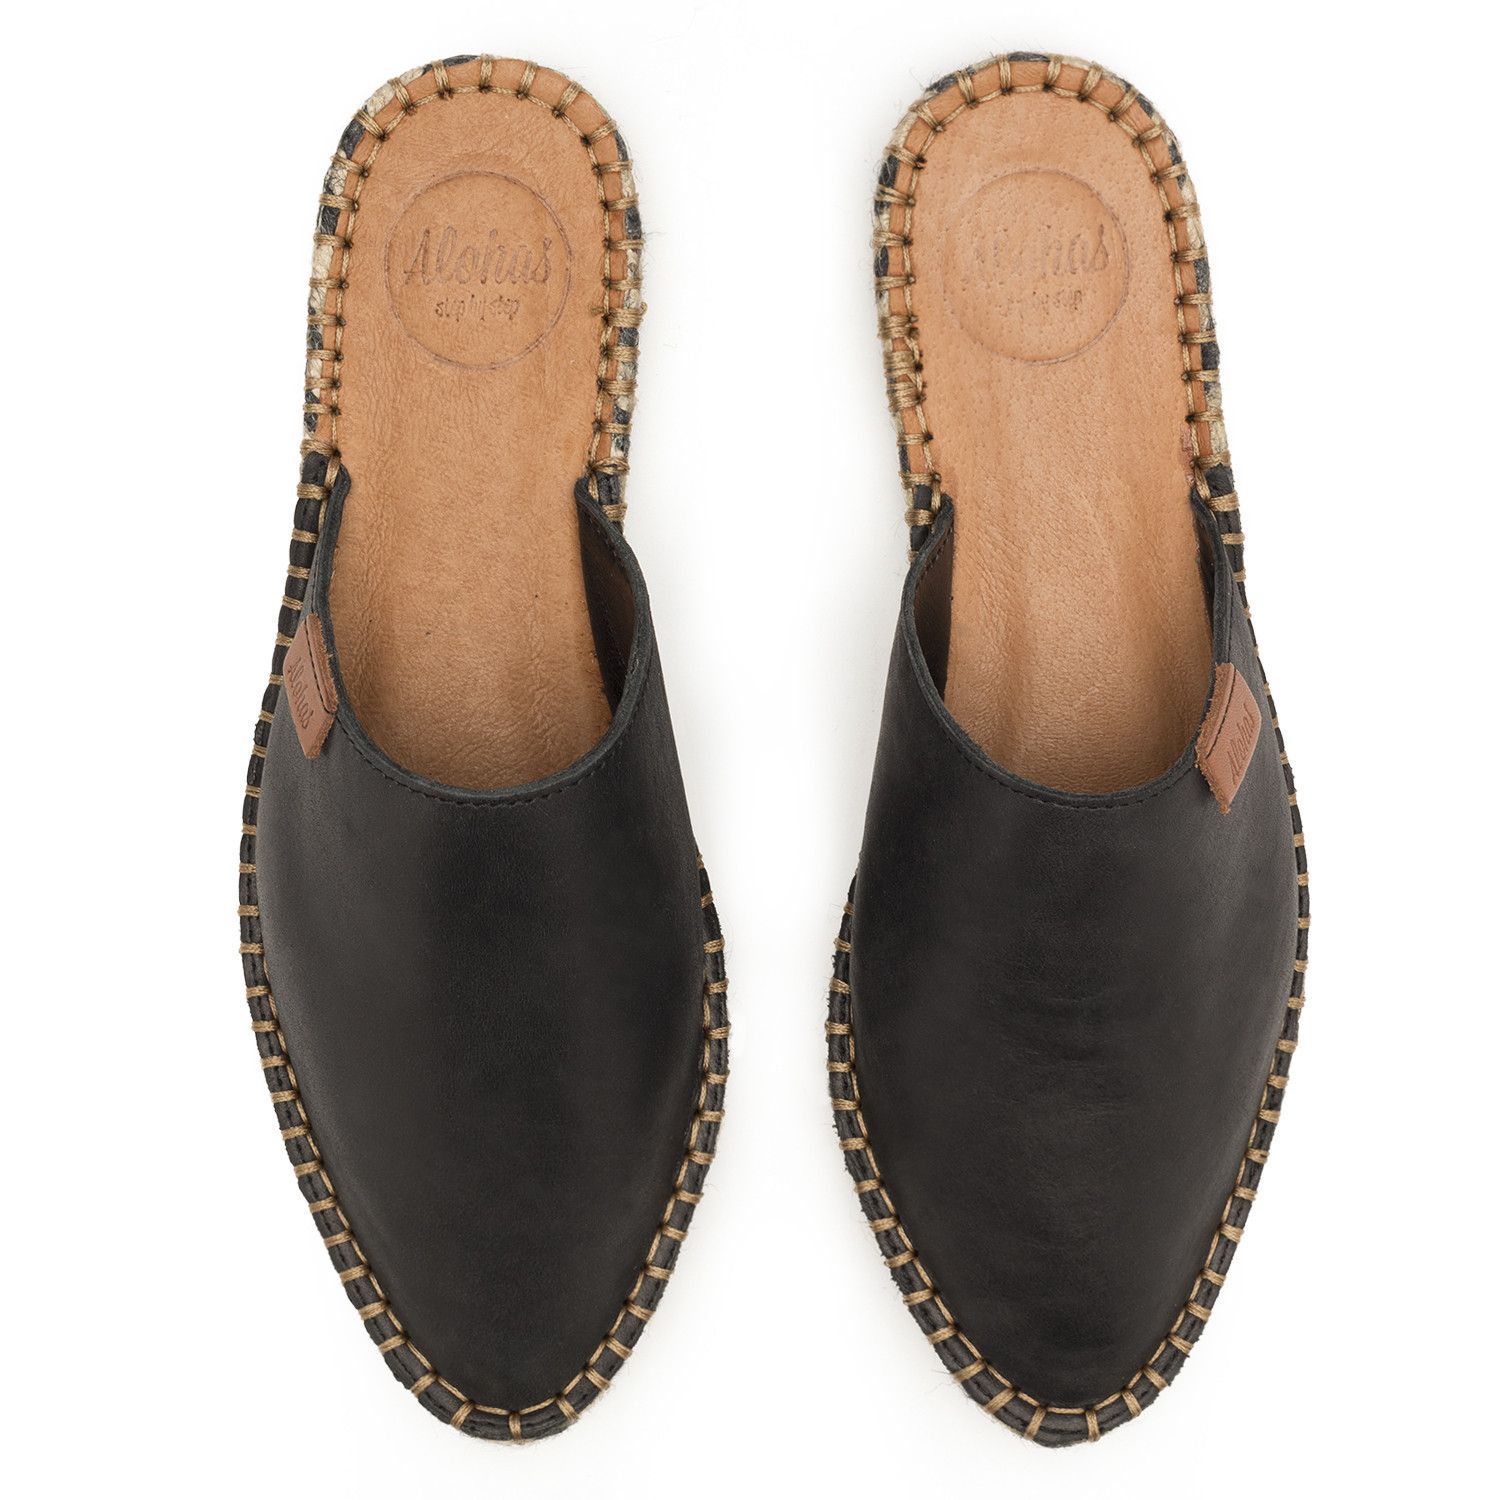 Babucha Black Espadrilles Flat Leather